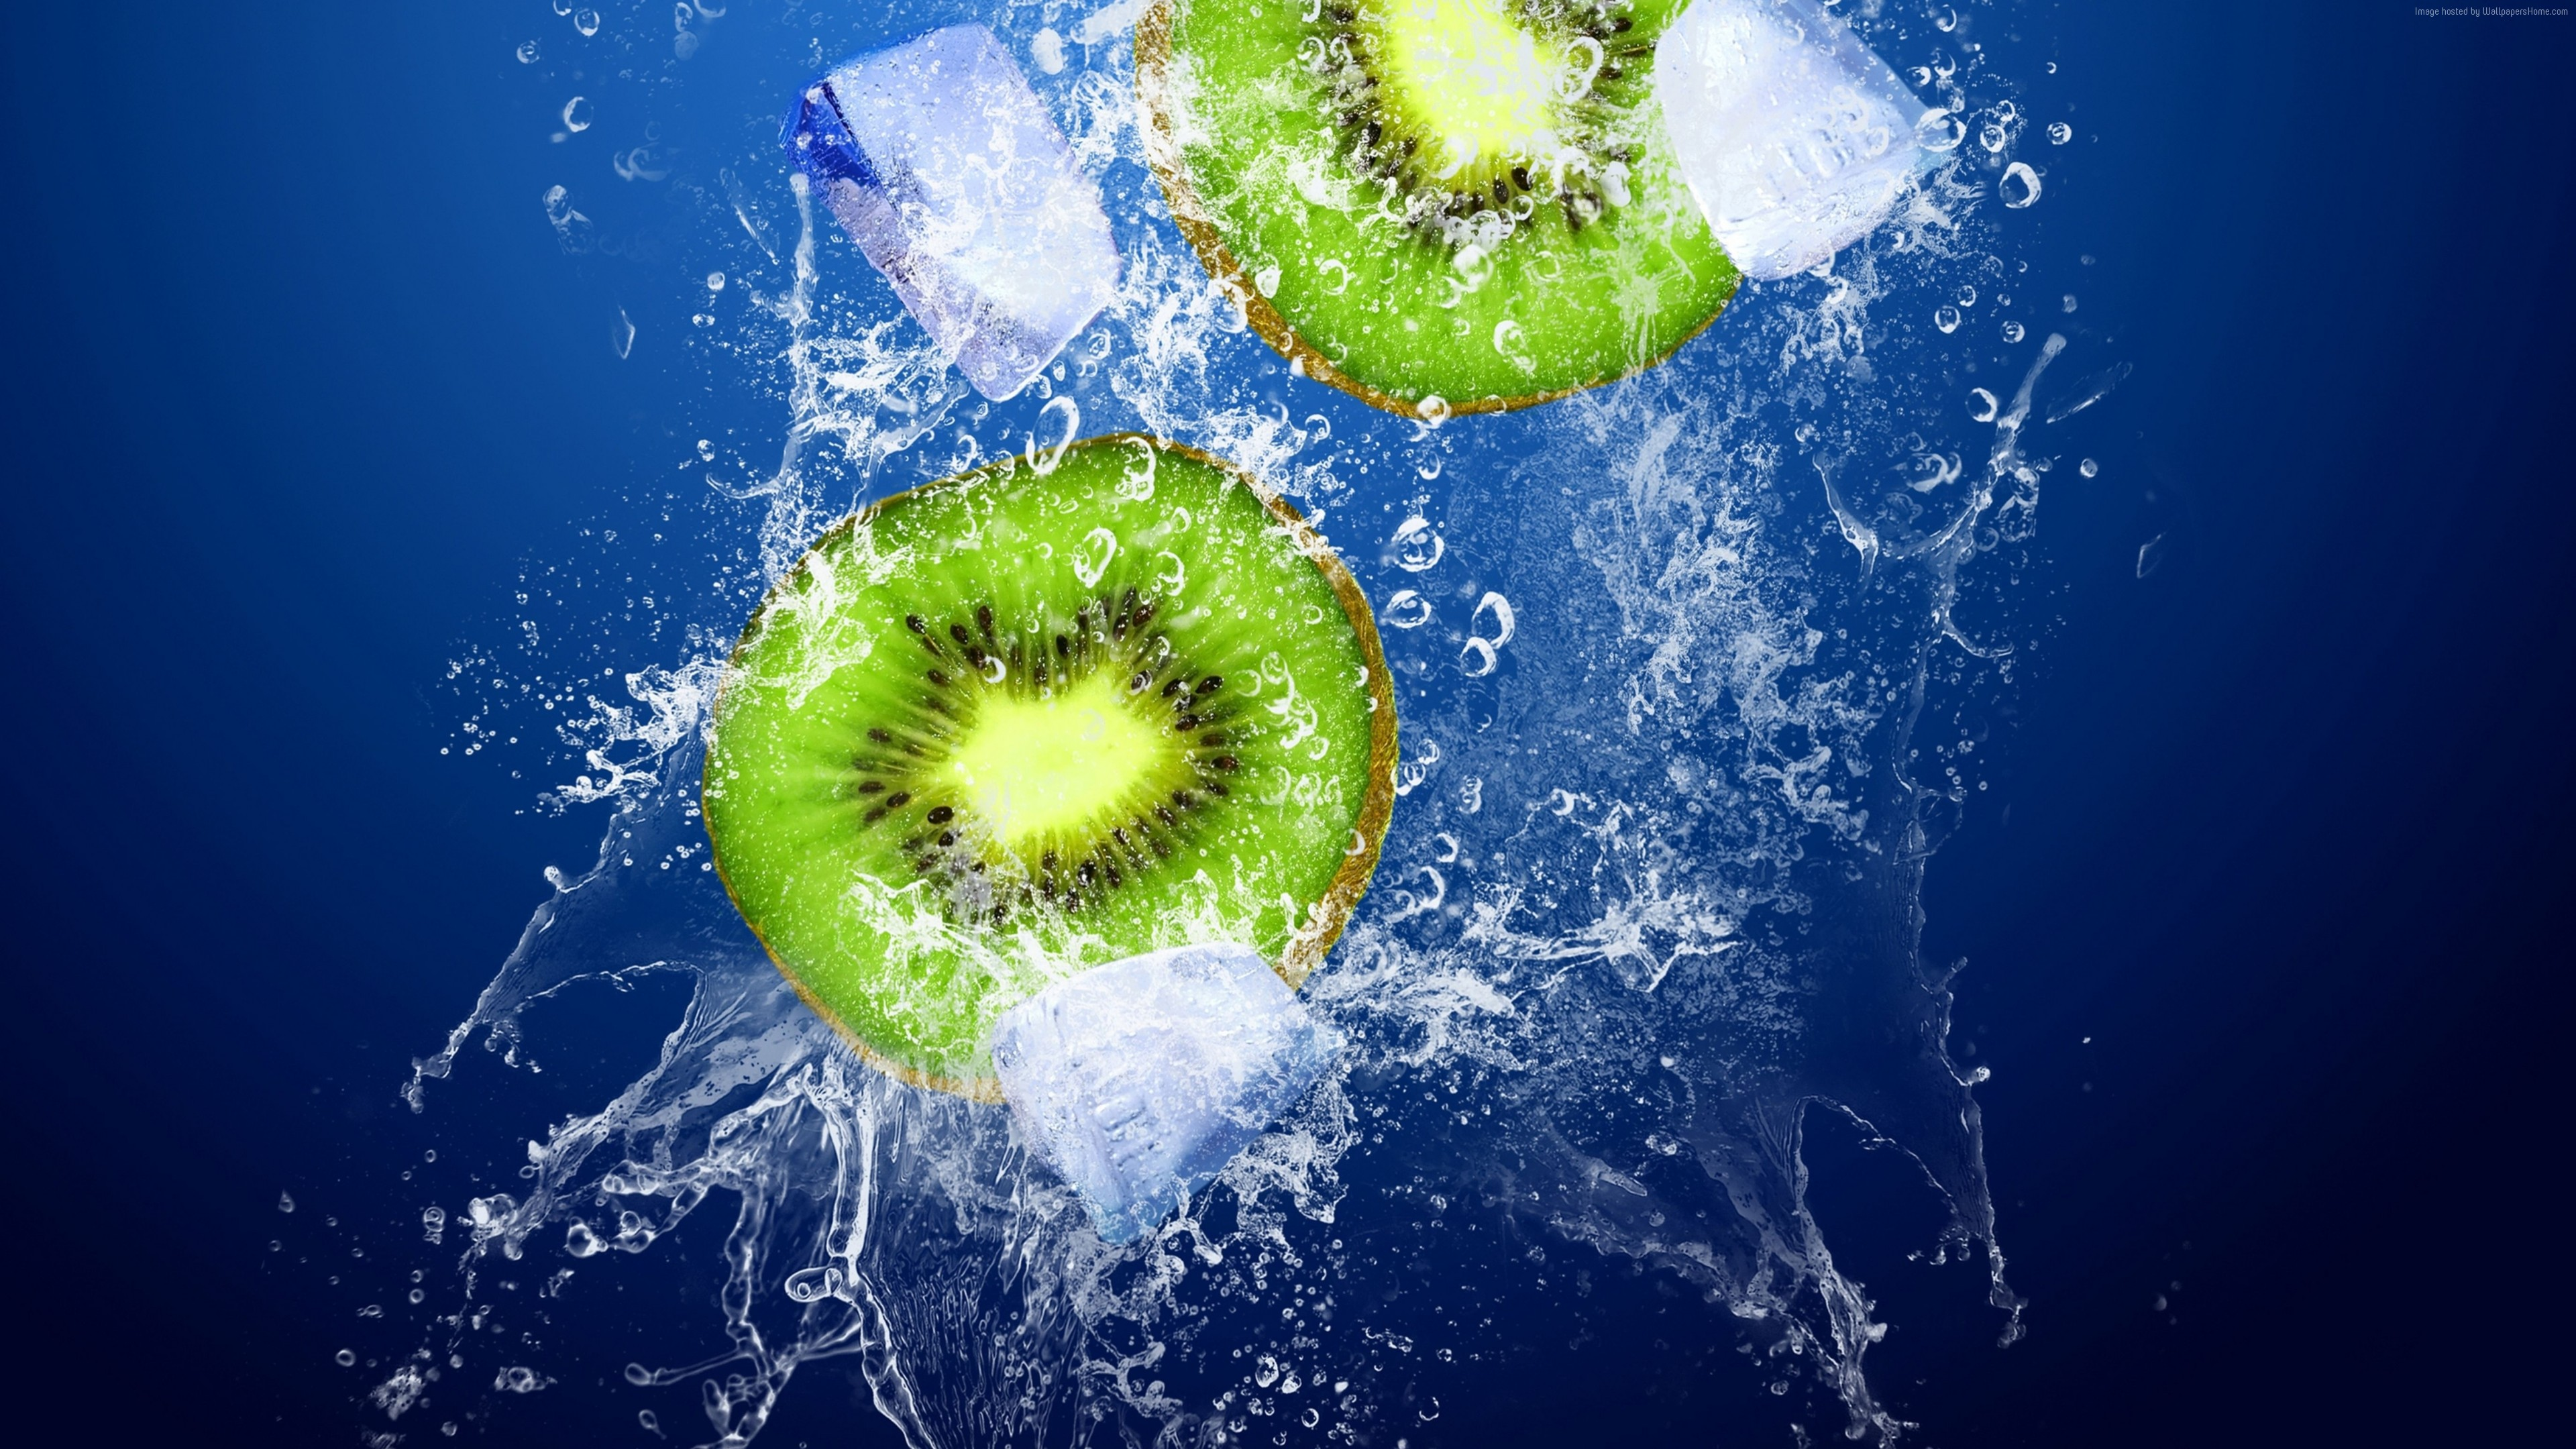 Stock Images kiwi, ice, underwater, 4k, Stock Images